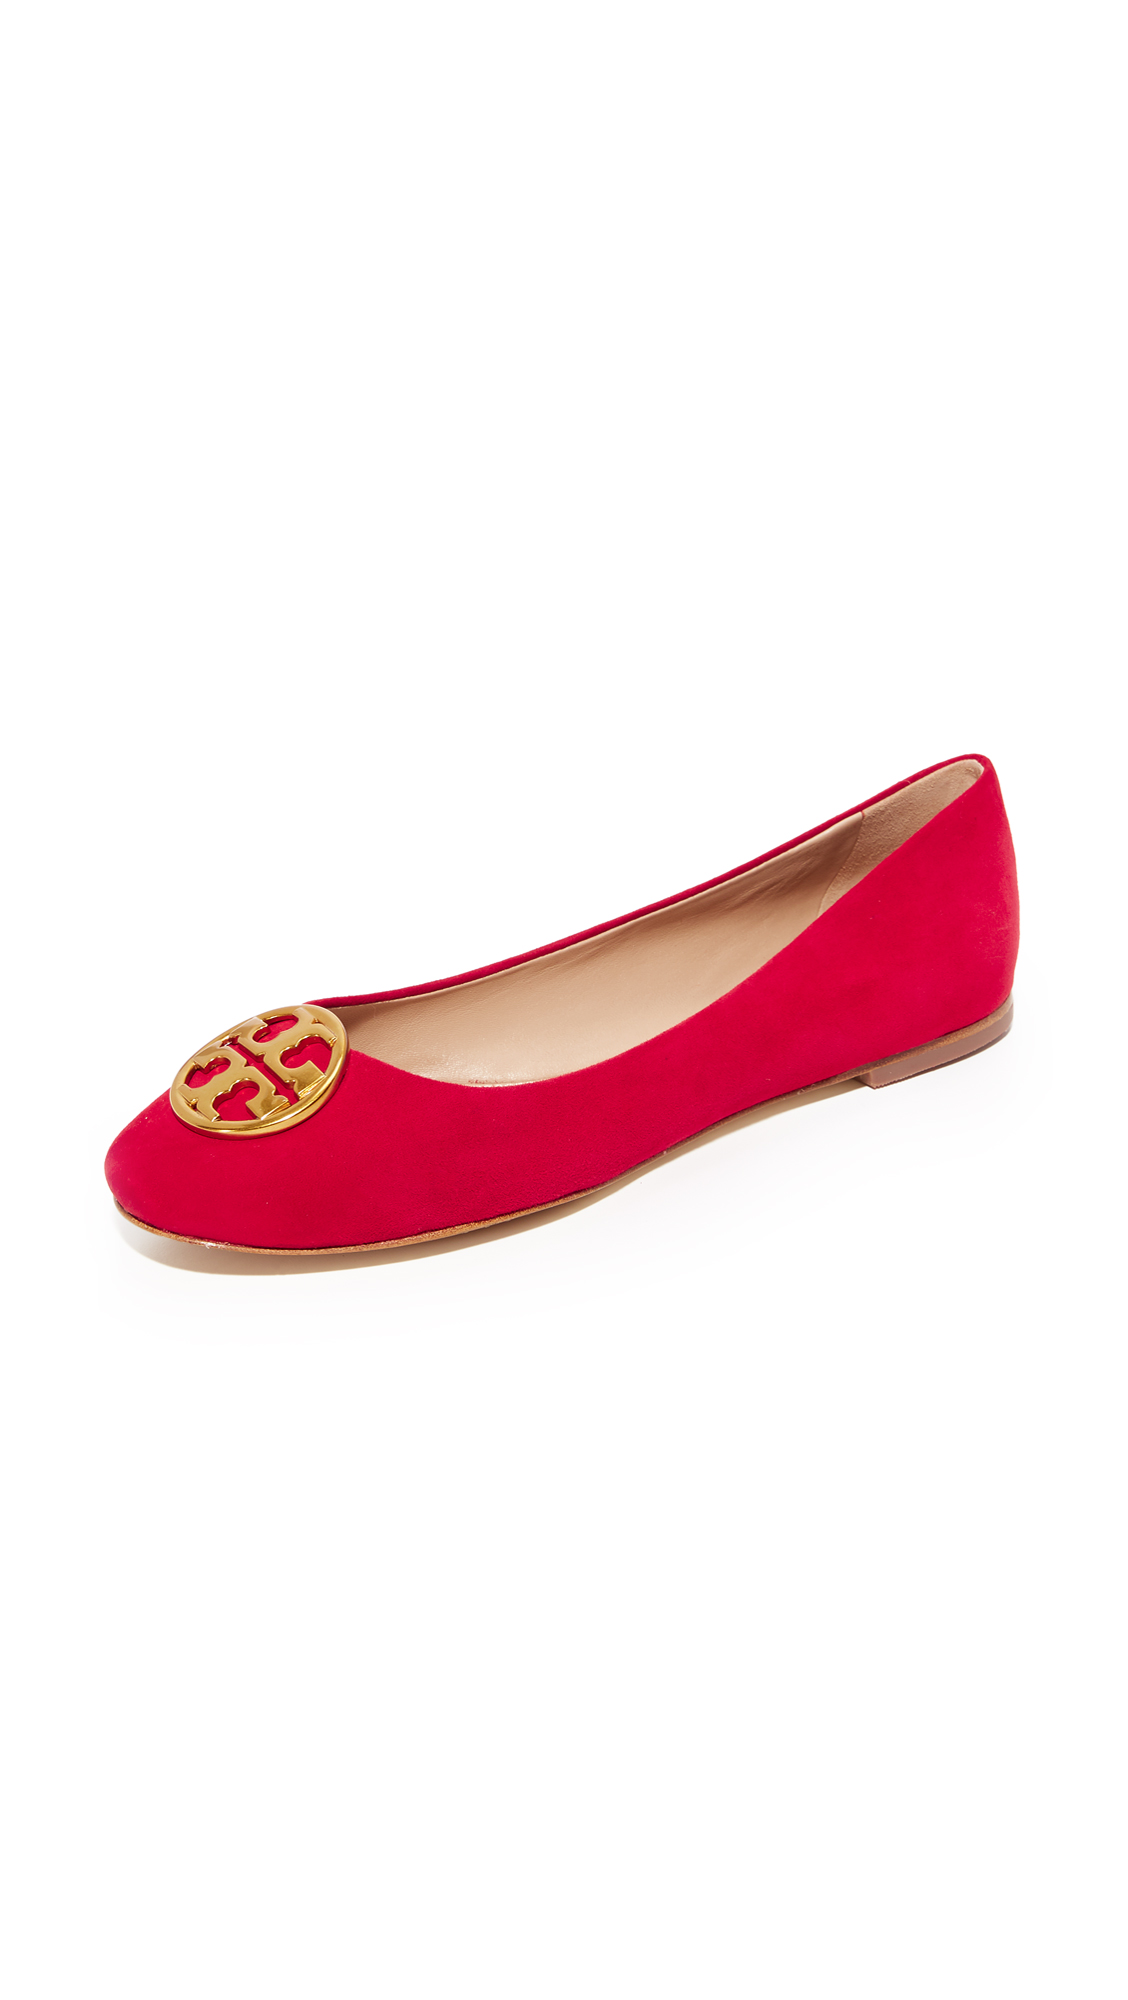 Tory Burch Chelsea Ballet Flats - Liberty Red